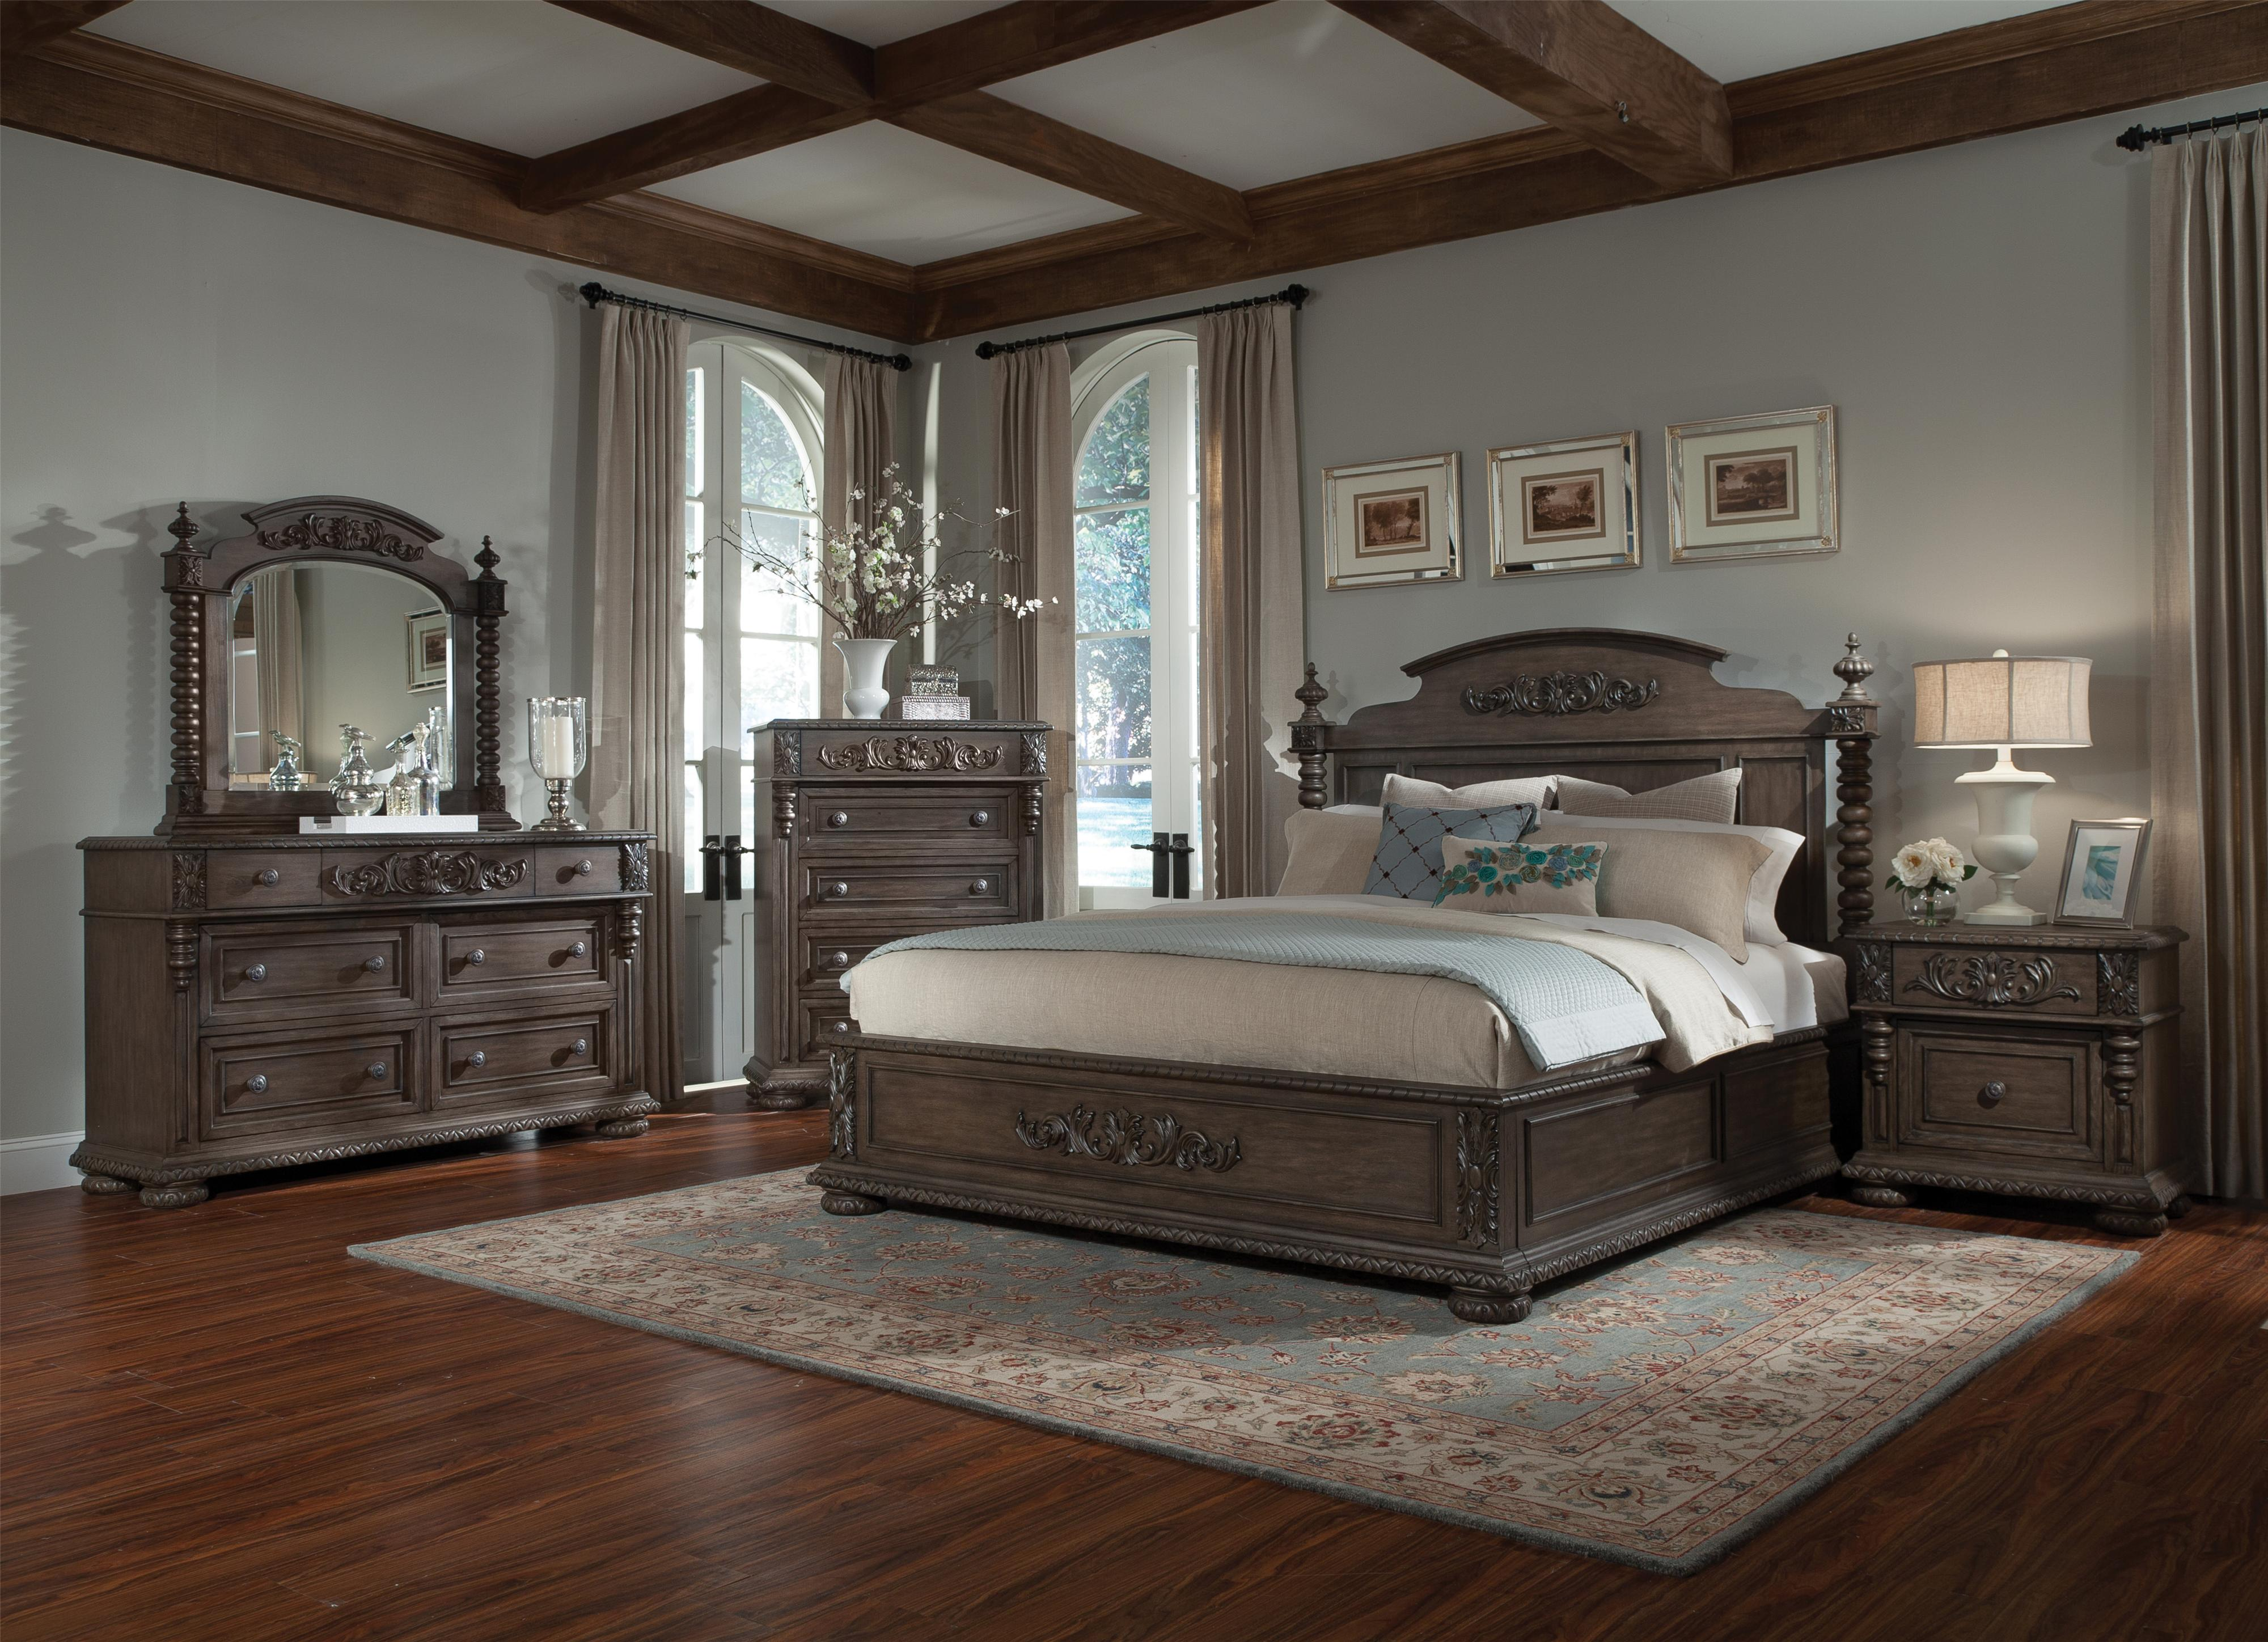 Bedroom Furniture Virginia king bed with bun feet and carved detailssimple elegance